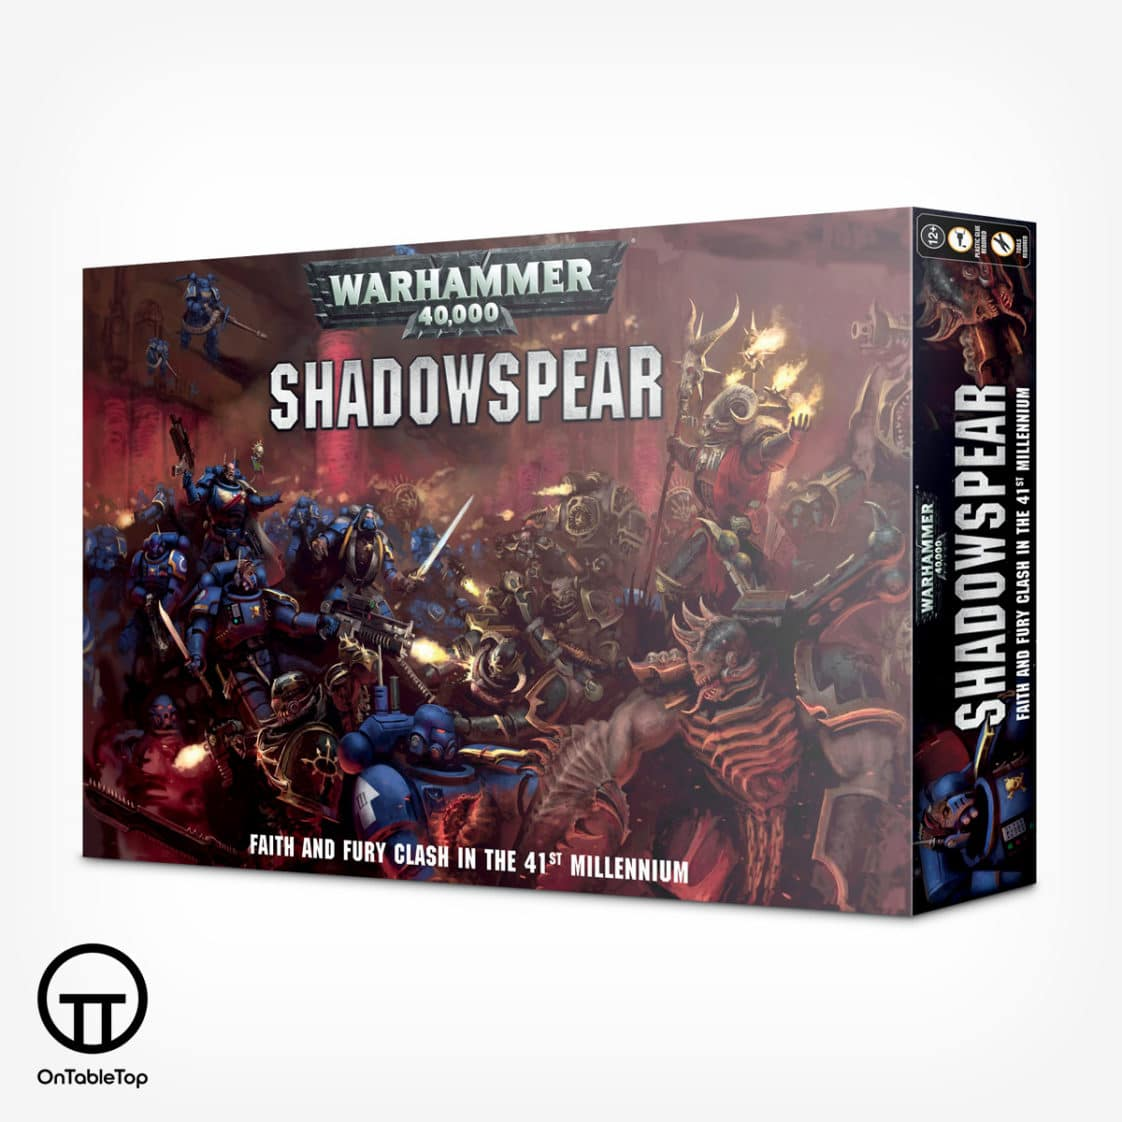 OTT-Shadowspear-Box-60010199023